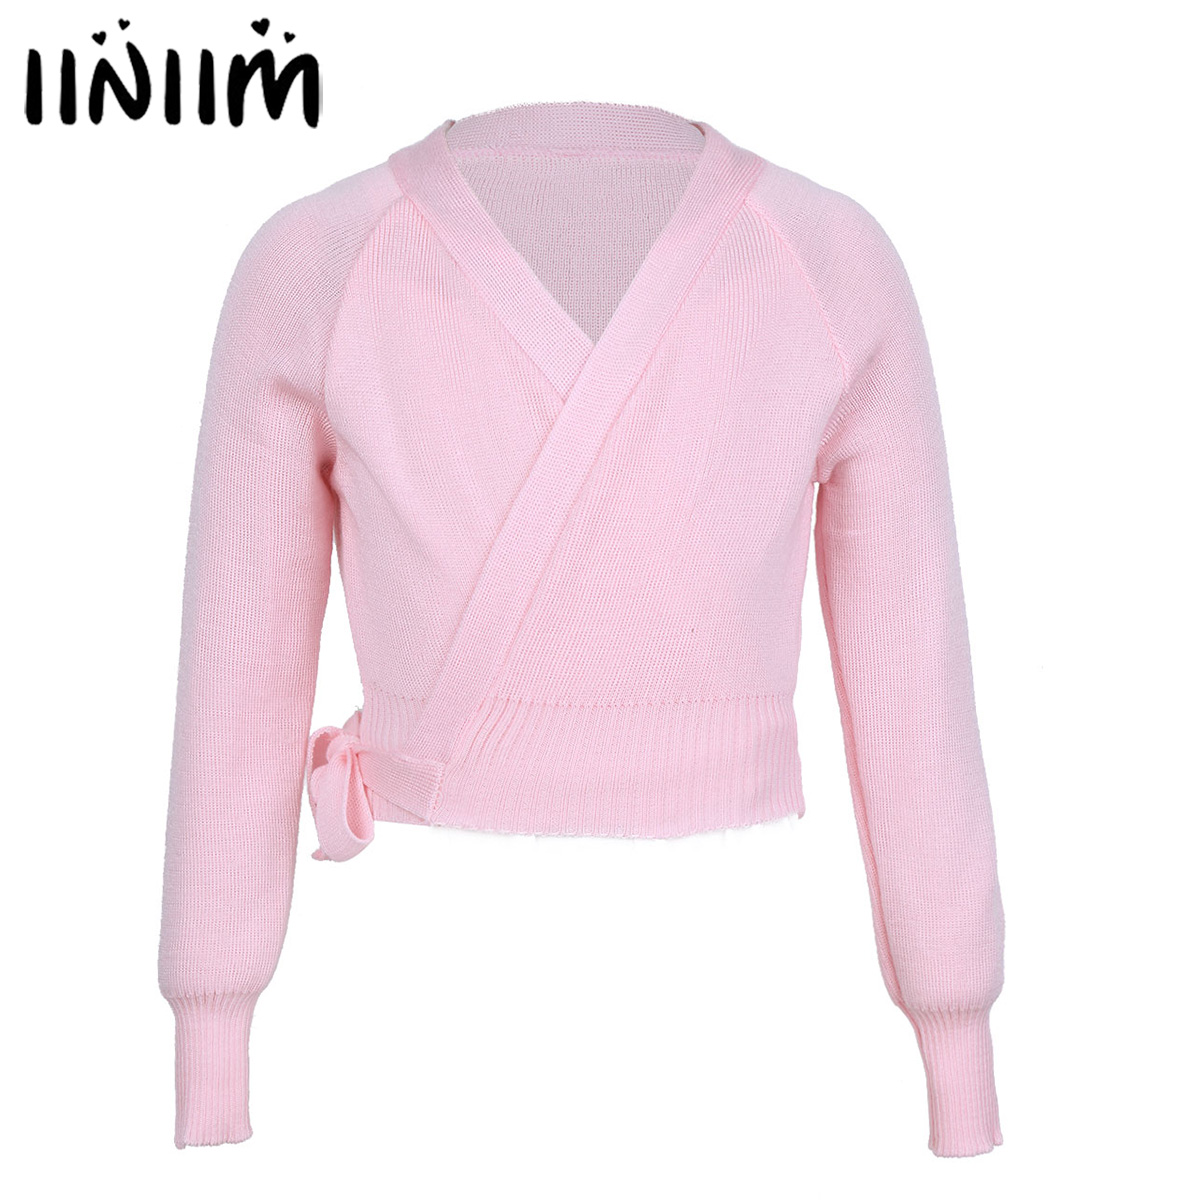 Kids Girls Spring Tutu Ballet Clothing Knit Wrap Sweater Ballerina Ballet Dance Cardigan Warm-up Gymnastics Dancing Costumes